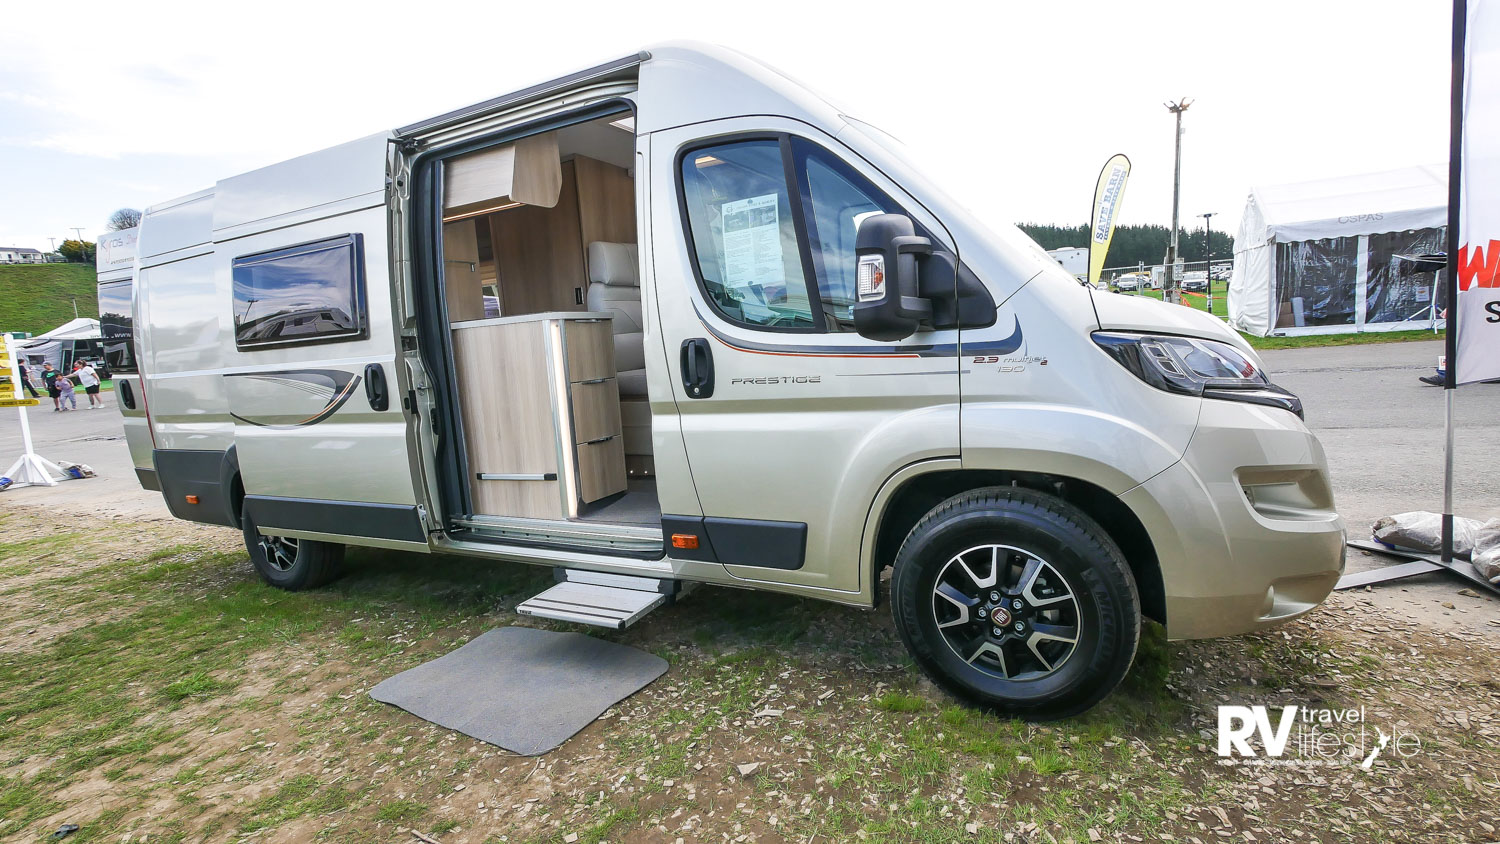 This sized camper van offers more than you think for the size